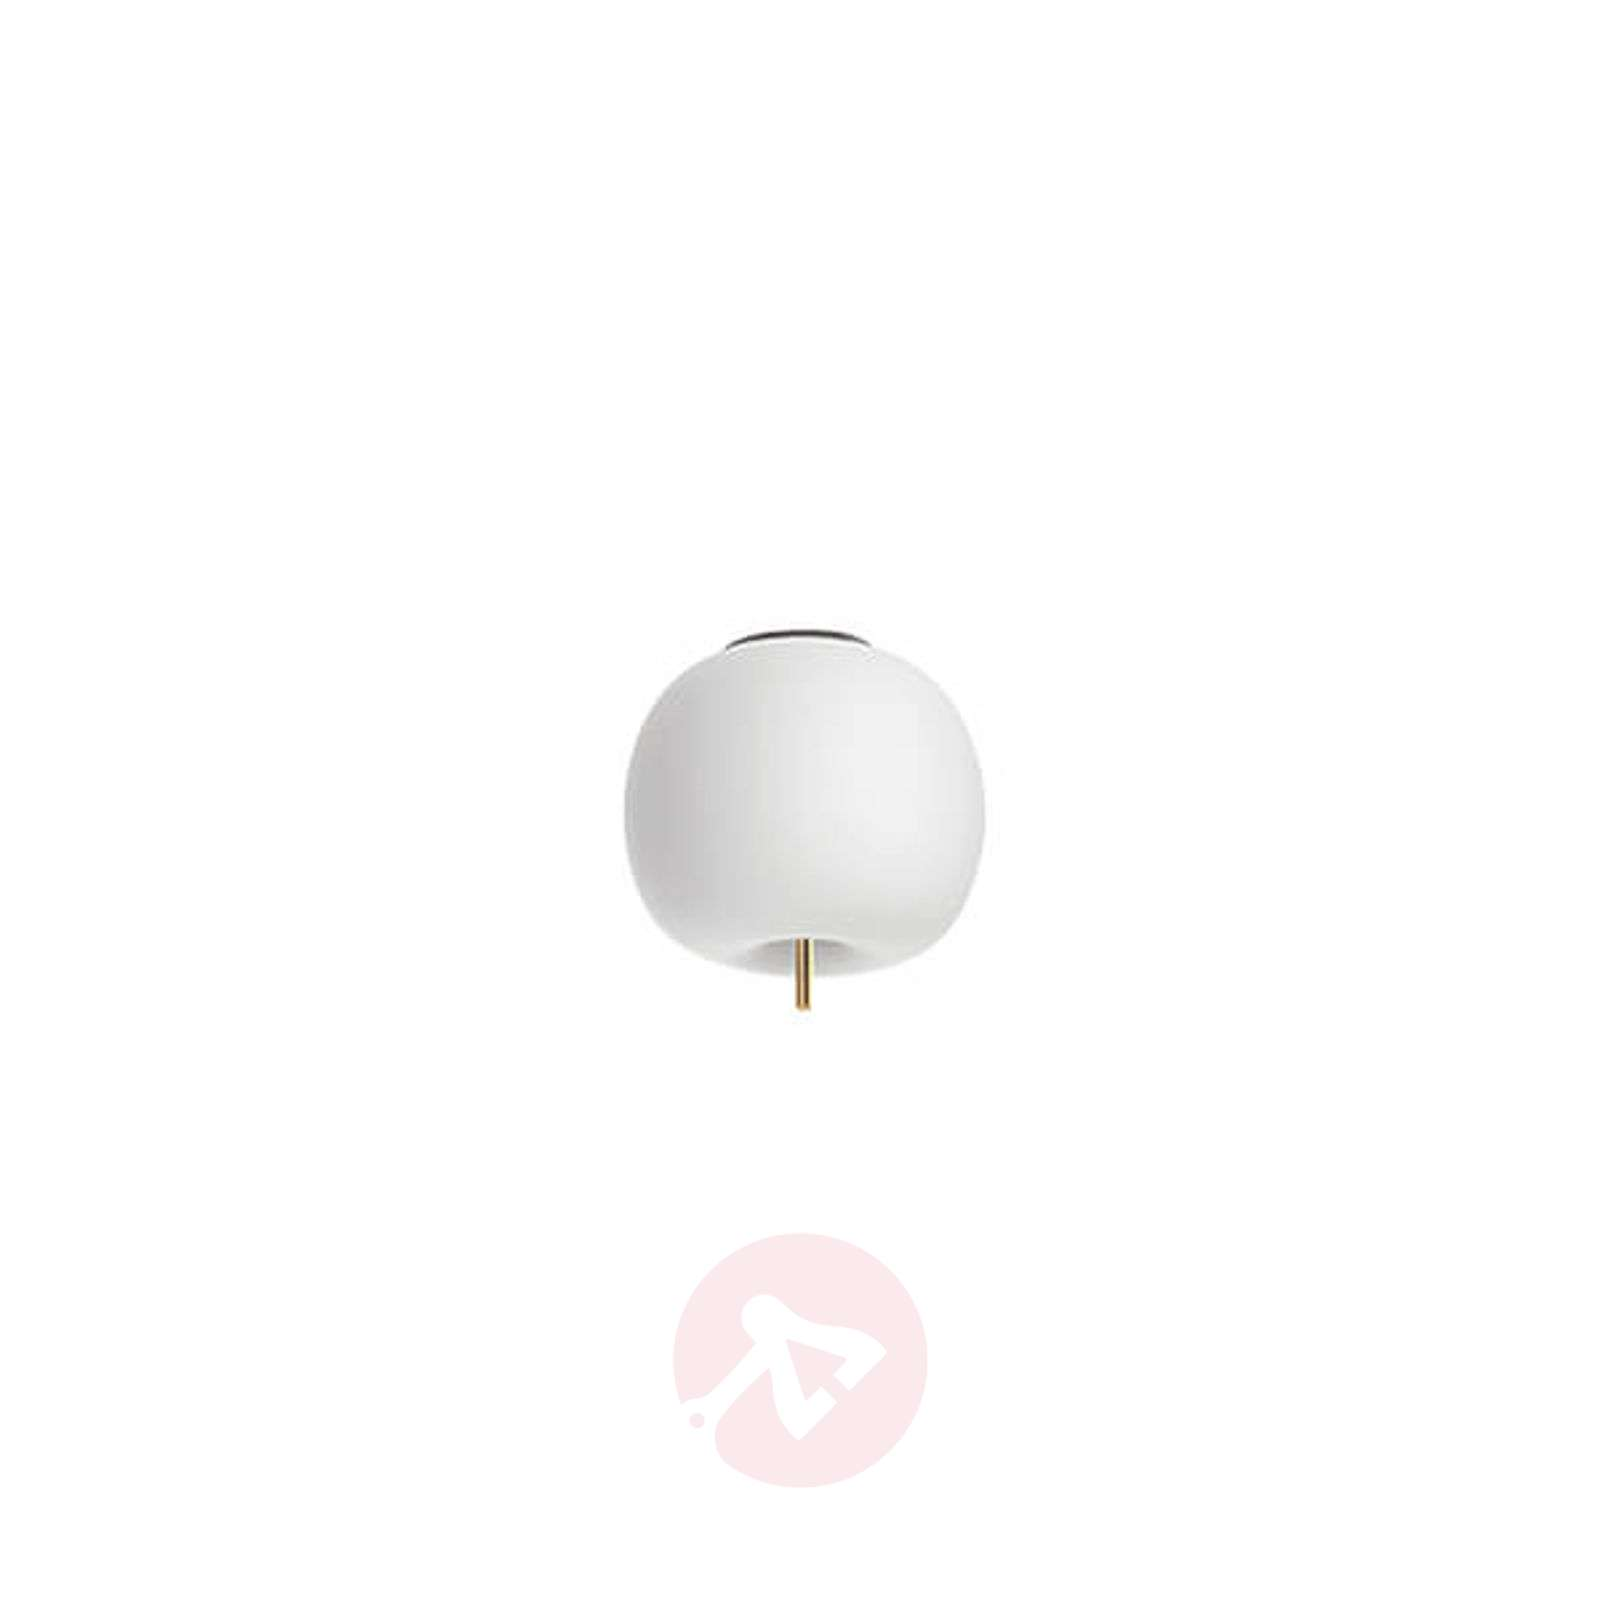 Kundalini Kushi LED ceiling light brass-5520189X-08